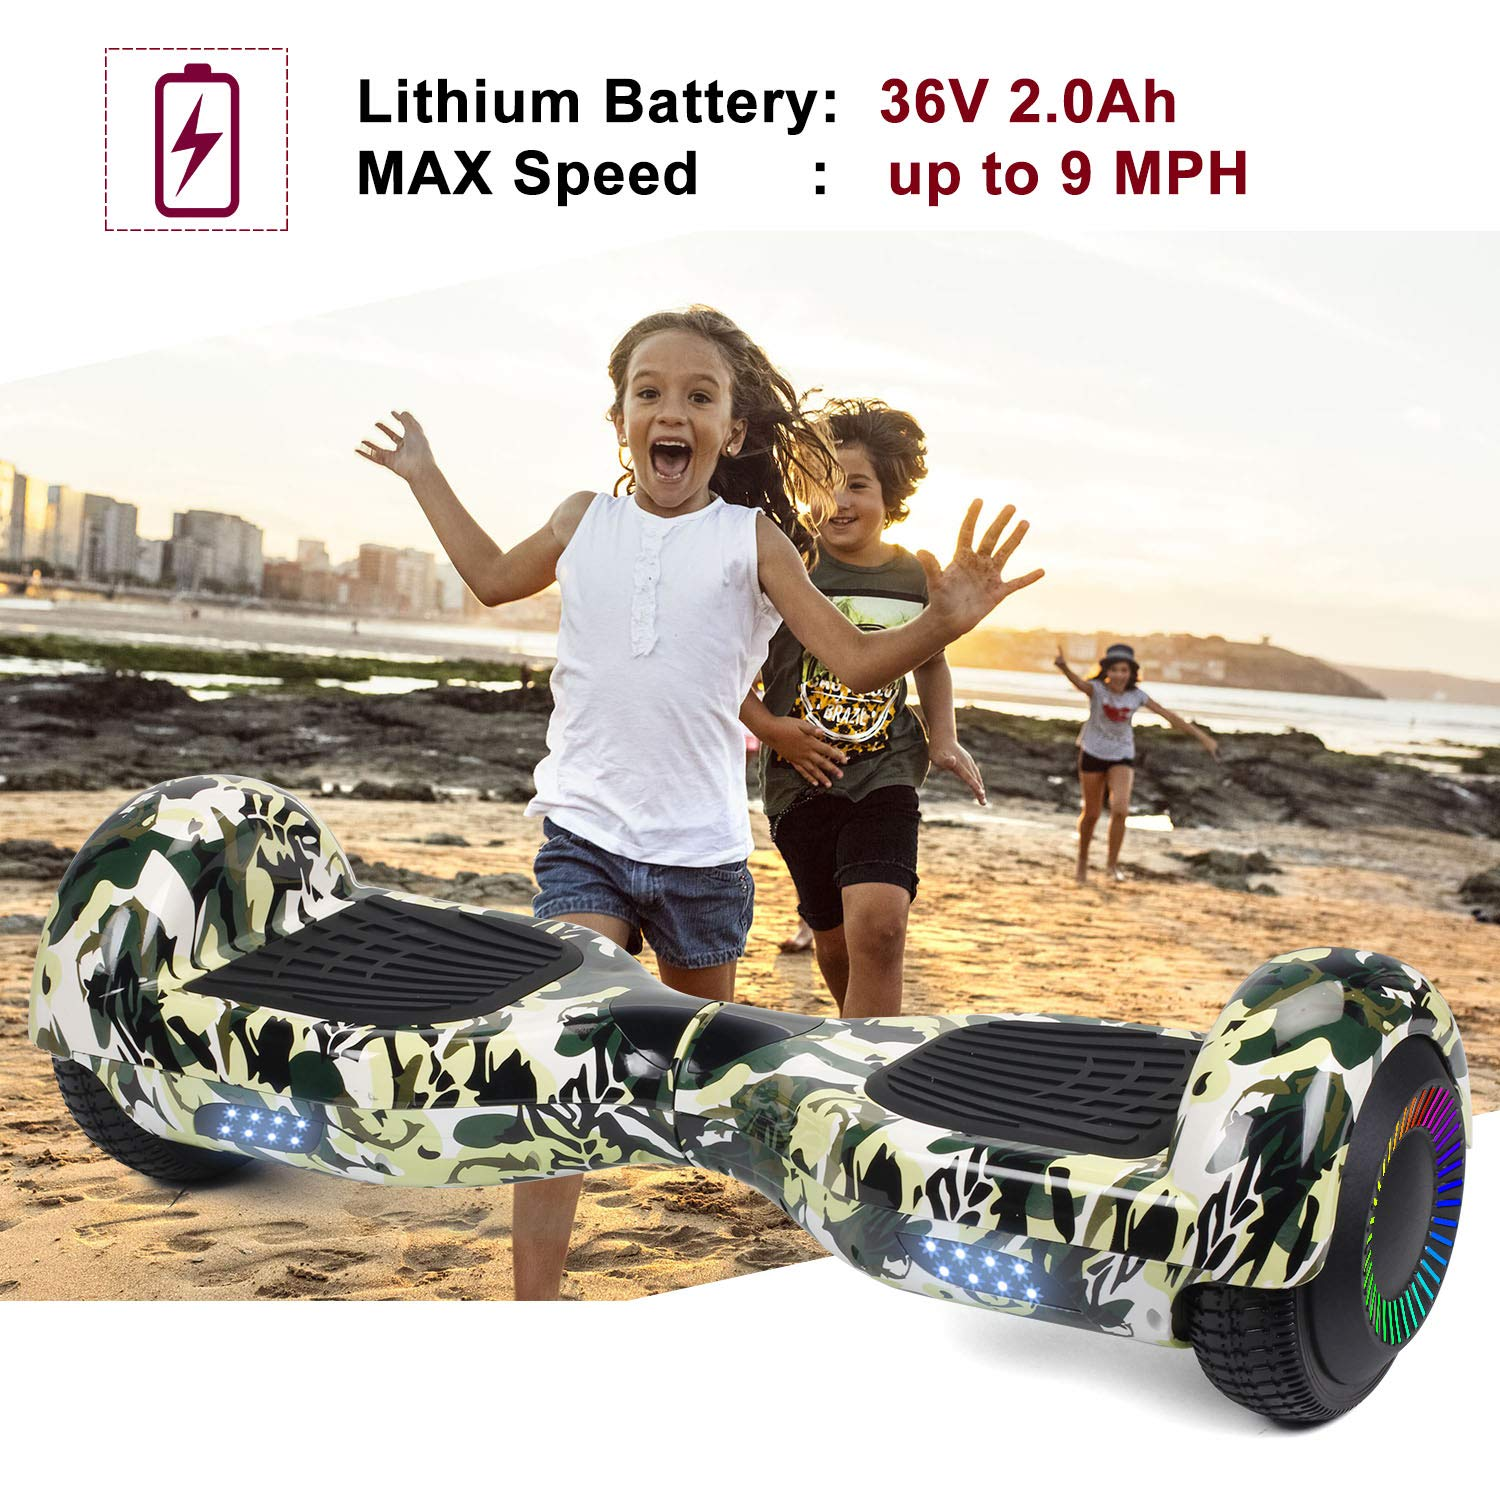 SISIGAD Hoverboard Self Balancing Scooter 6.5'' Two-Wheel Self Balancing Hoverboard with LED Lights Electric Scooter for Adult Kids Gift UL 2272 Certified Fun Edition - Woodland Camo by SISIGAD (Image #3)